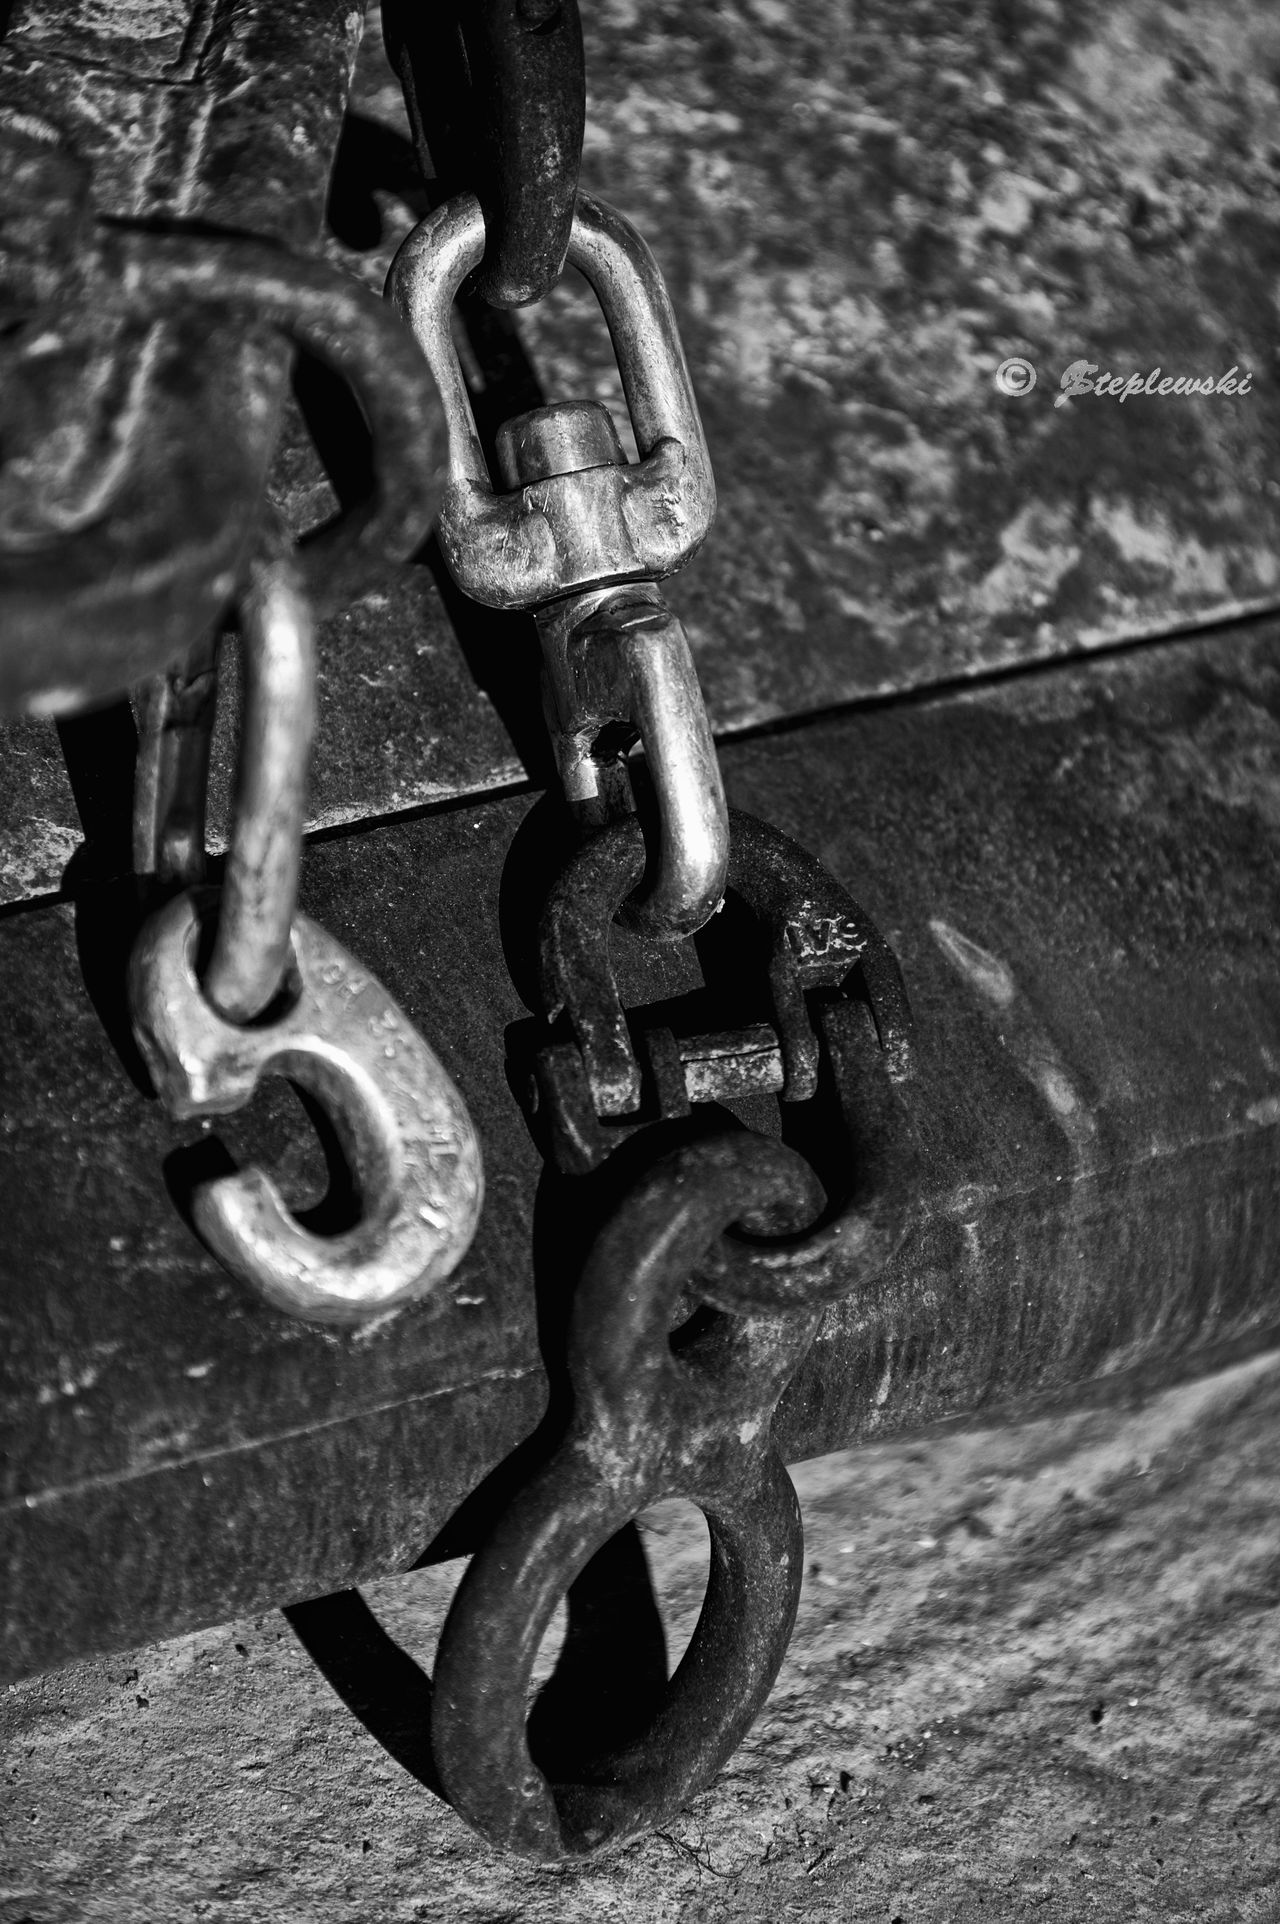 Hardware Iron Rust Black & White